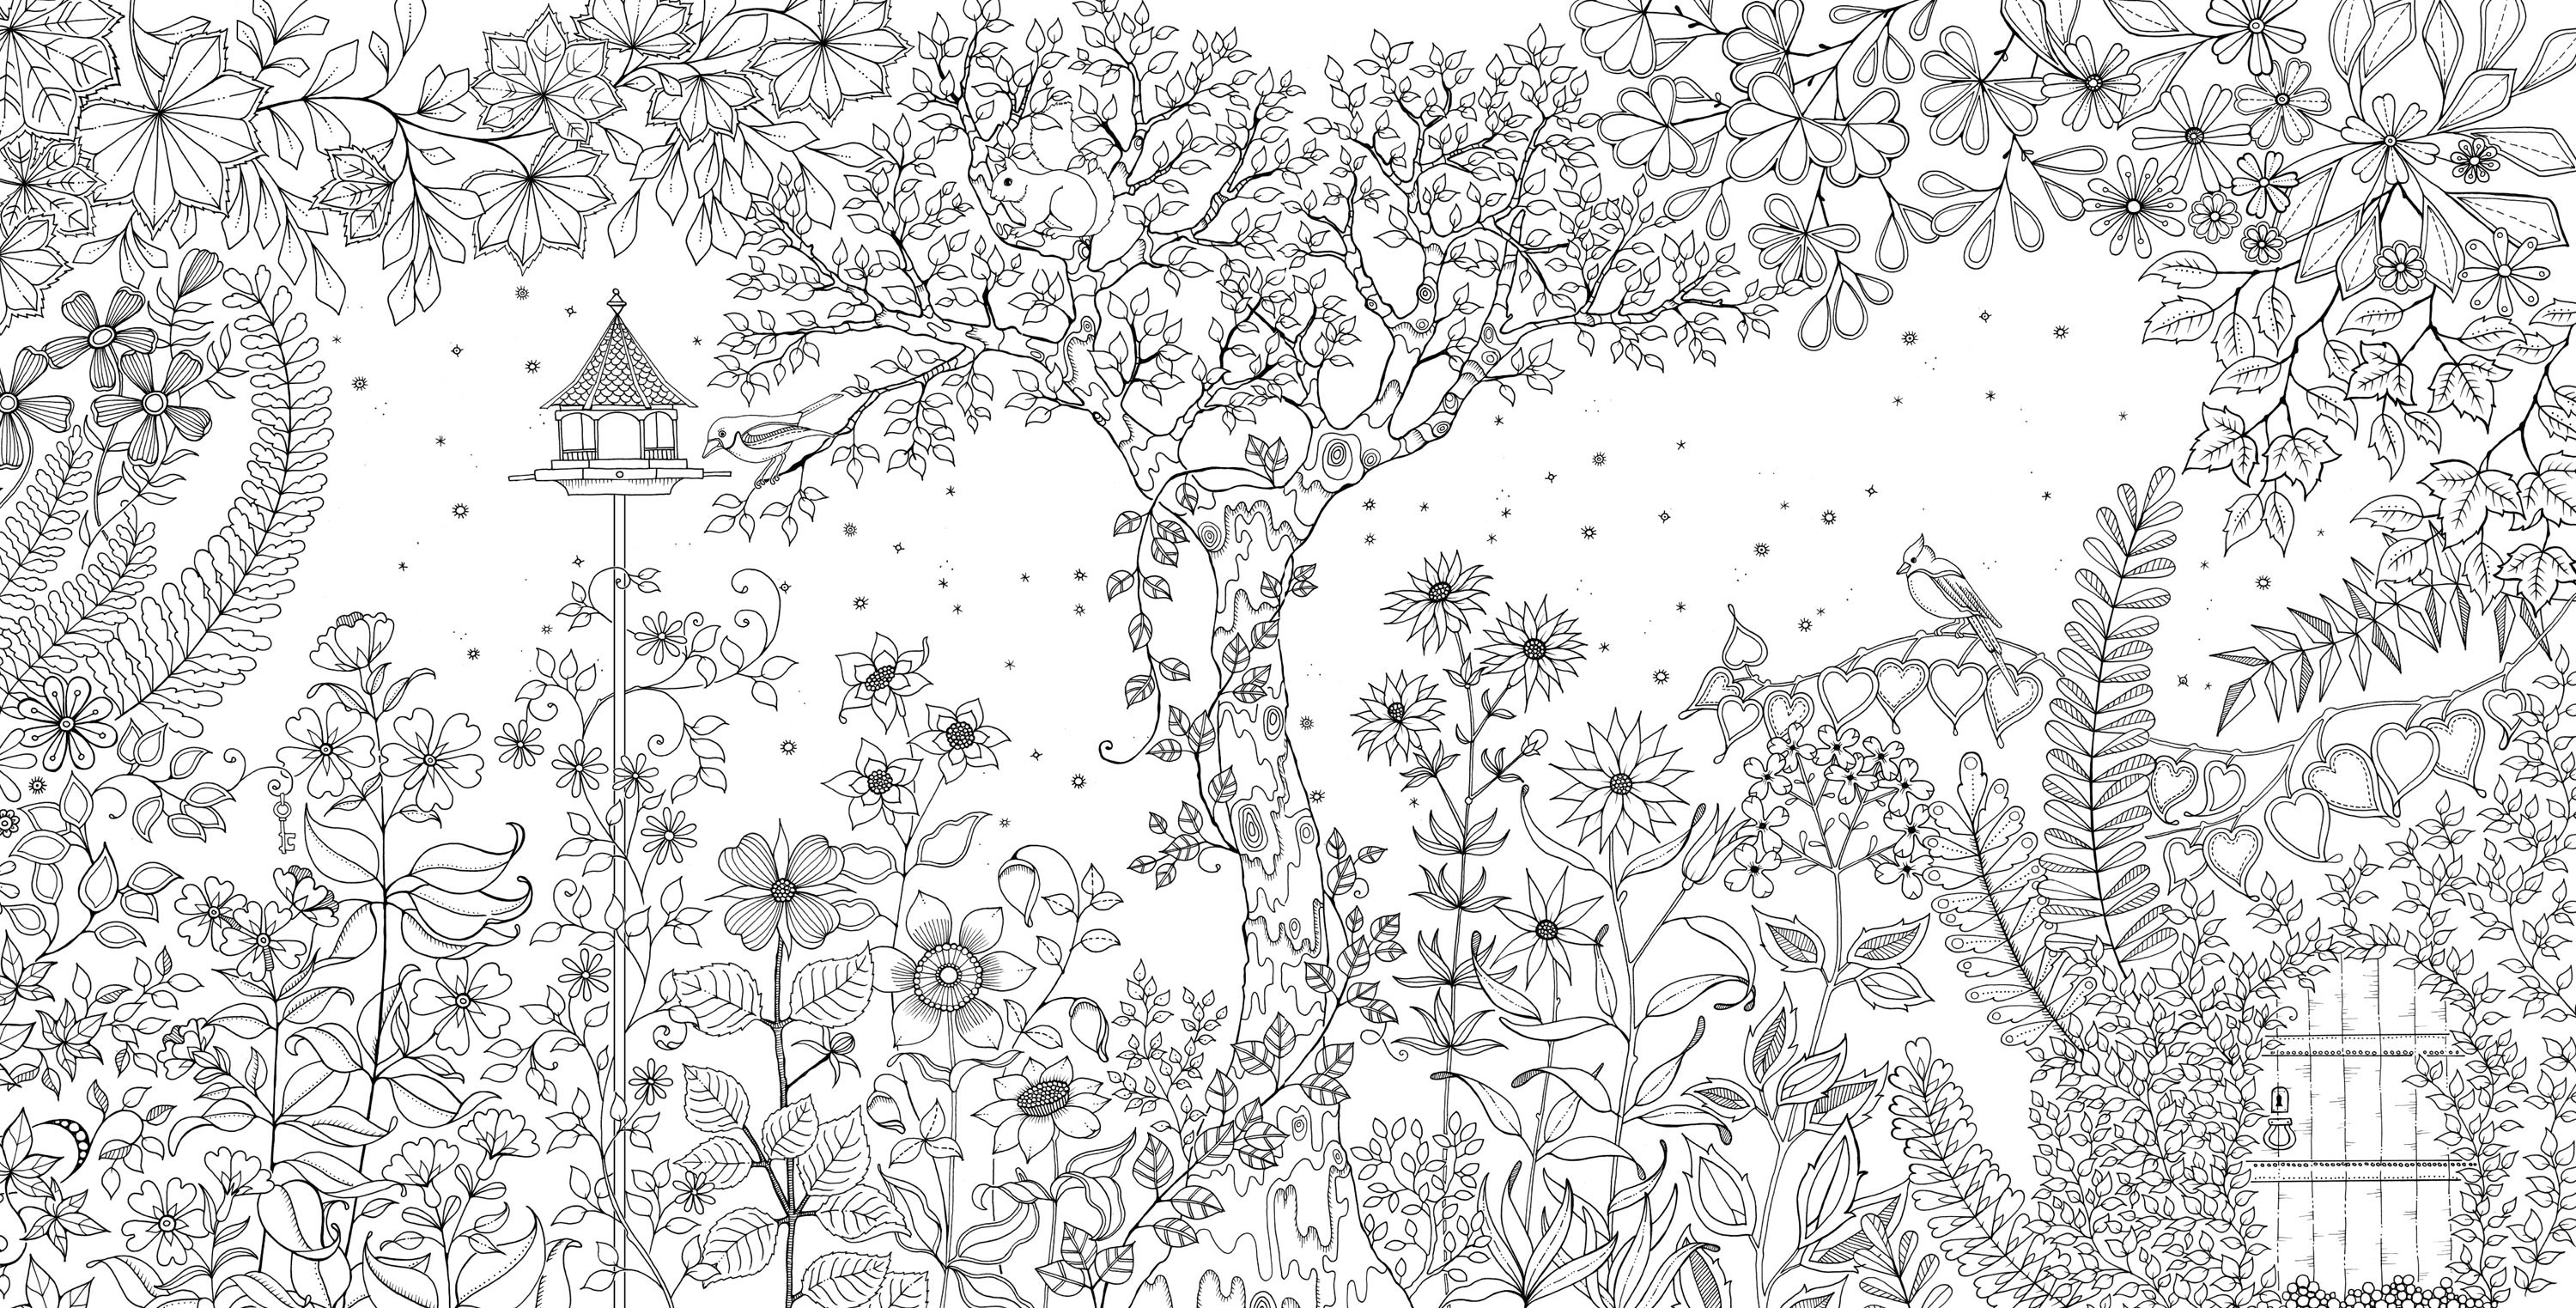 secret garden coloring book secret garden coloring book adults ...